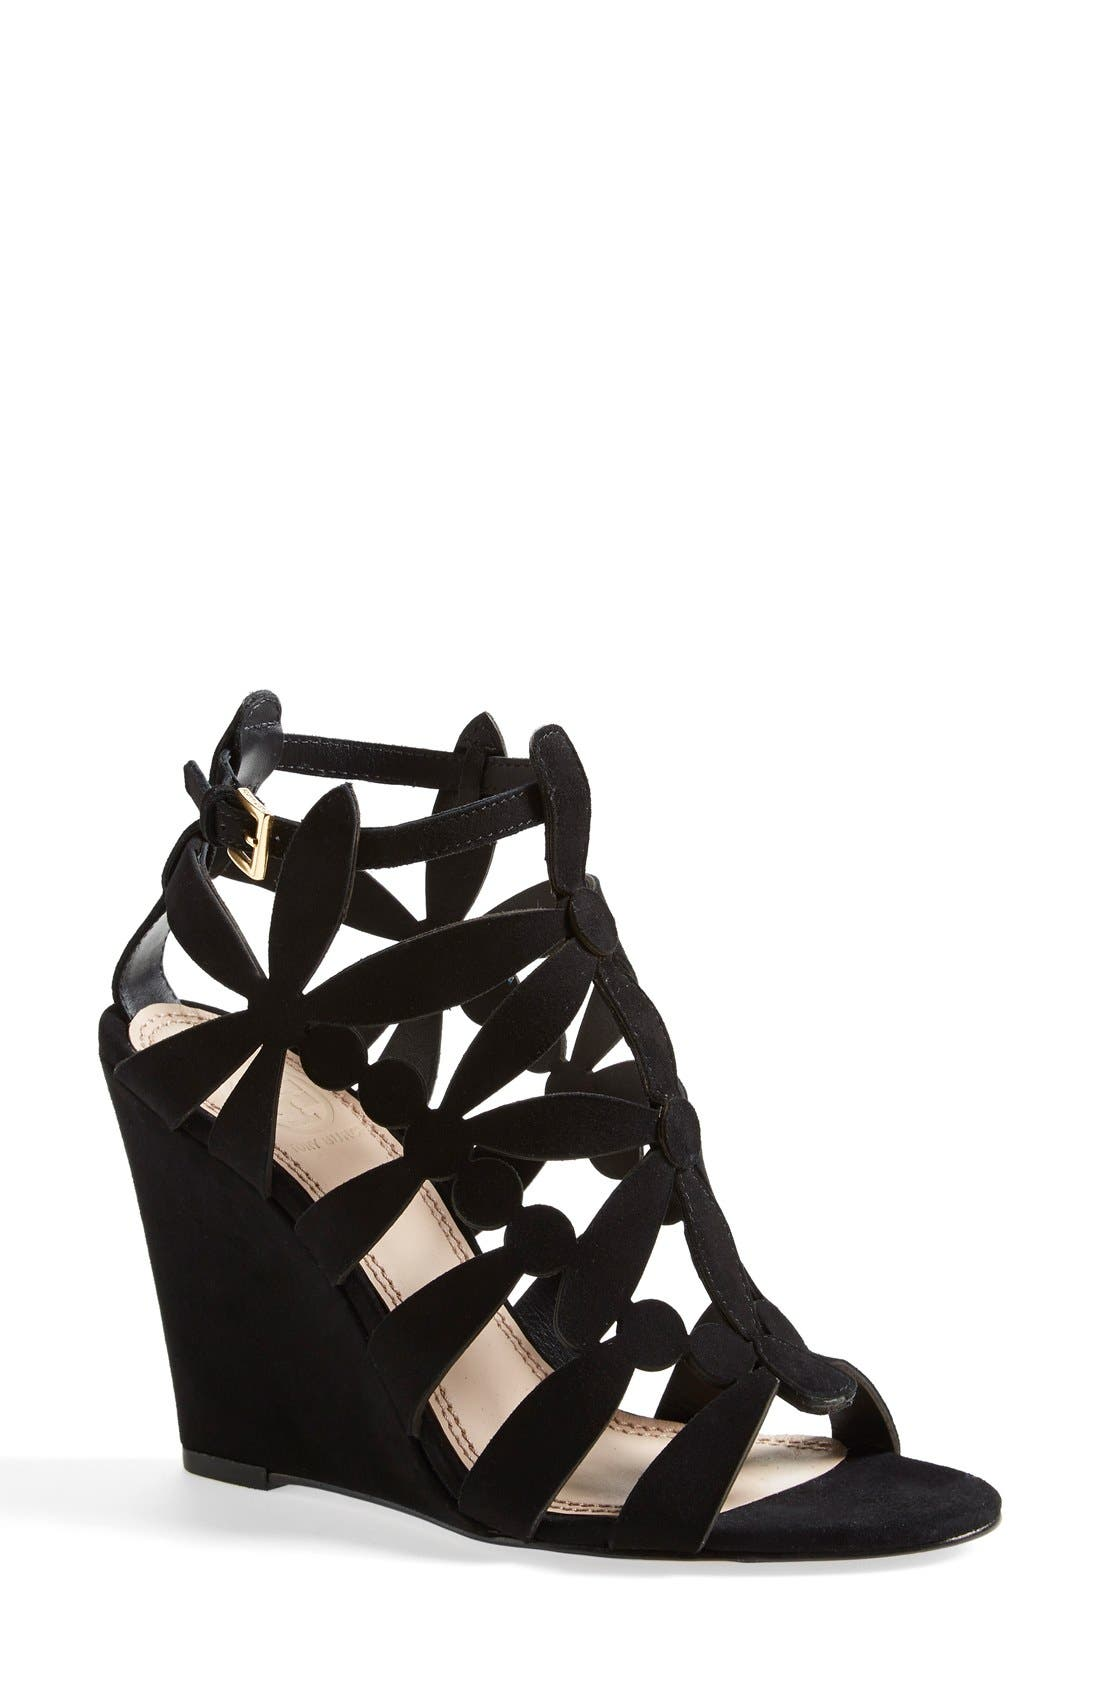 Main Image - Tory Burch 'Emerson' Cage Wedge Sandal (Women)